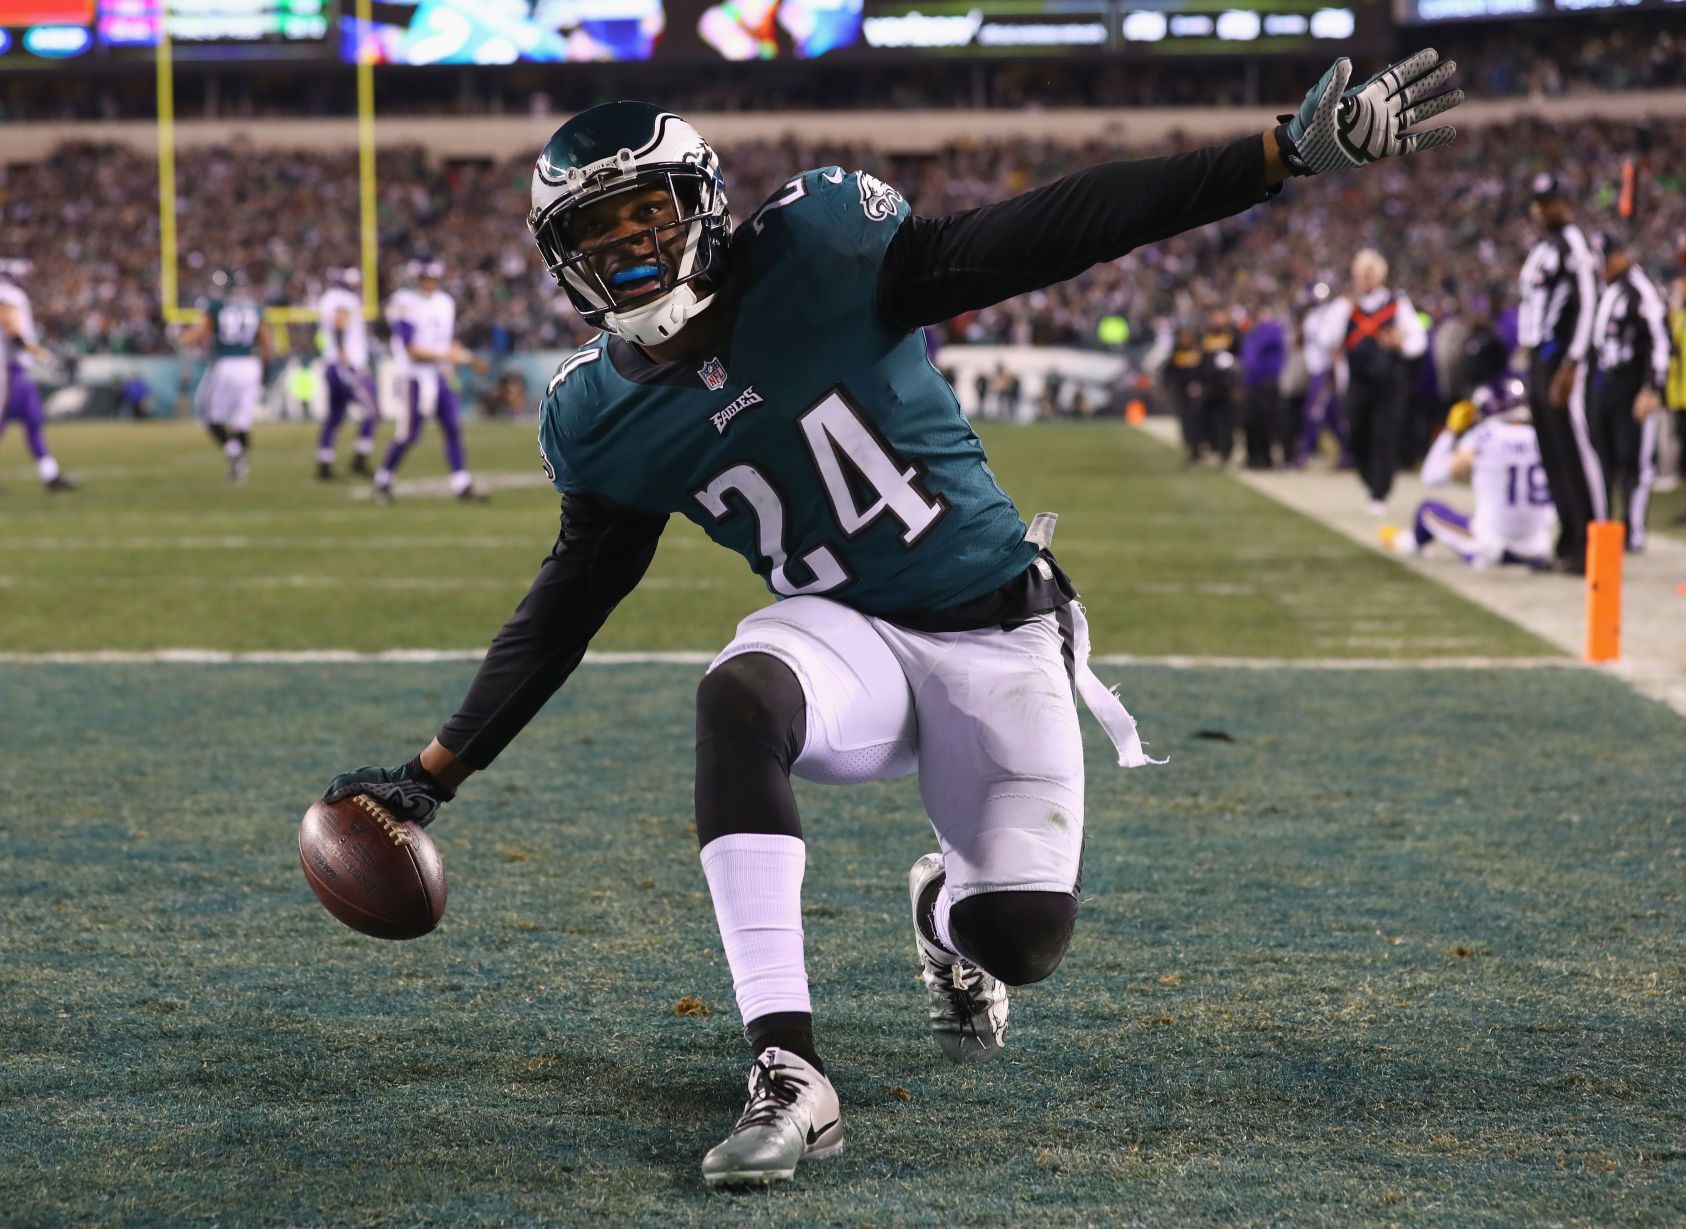 Corey Graham's Super Bowl reality far exceeds childhood dreams in ...